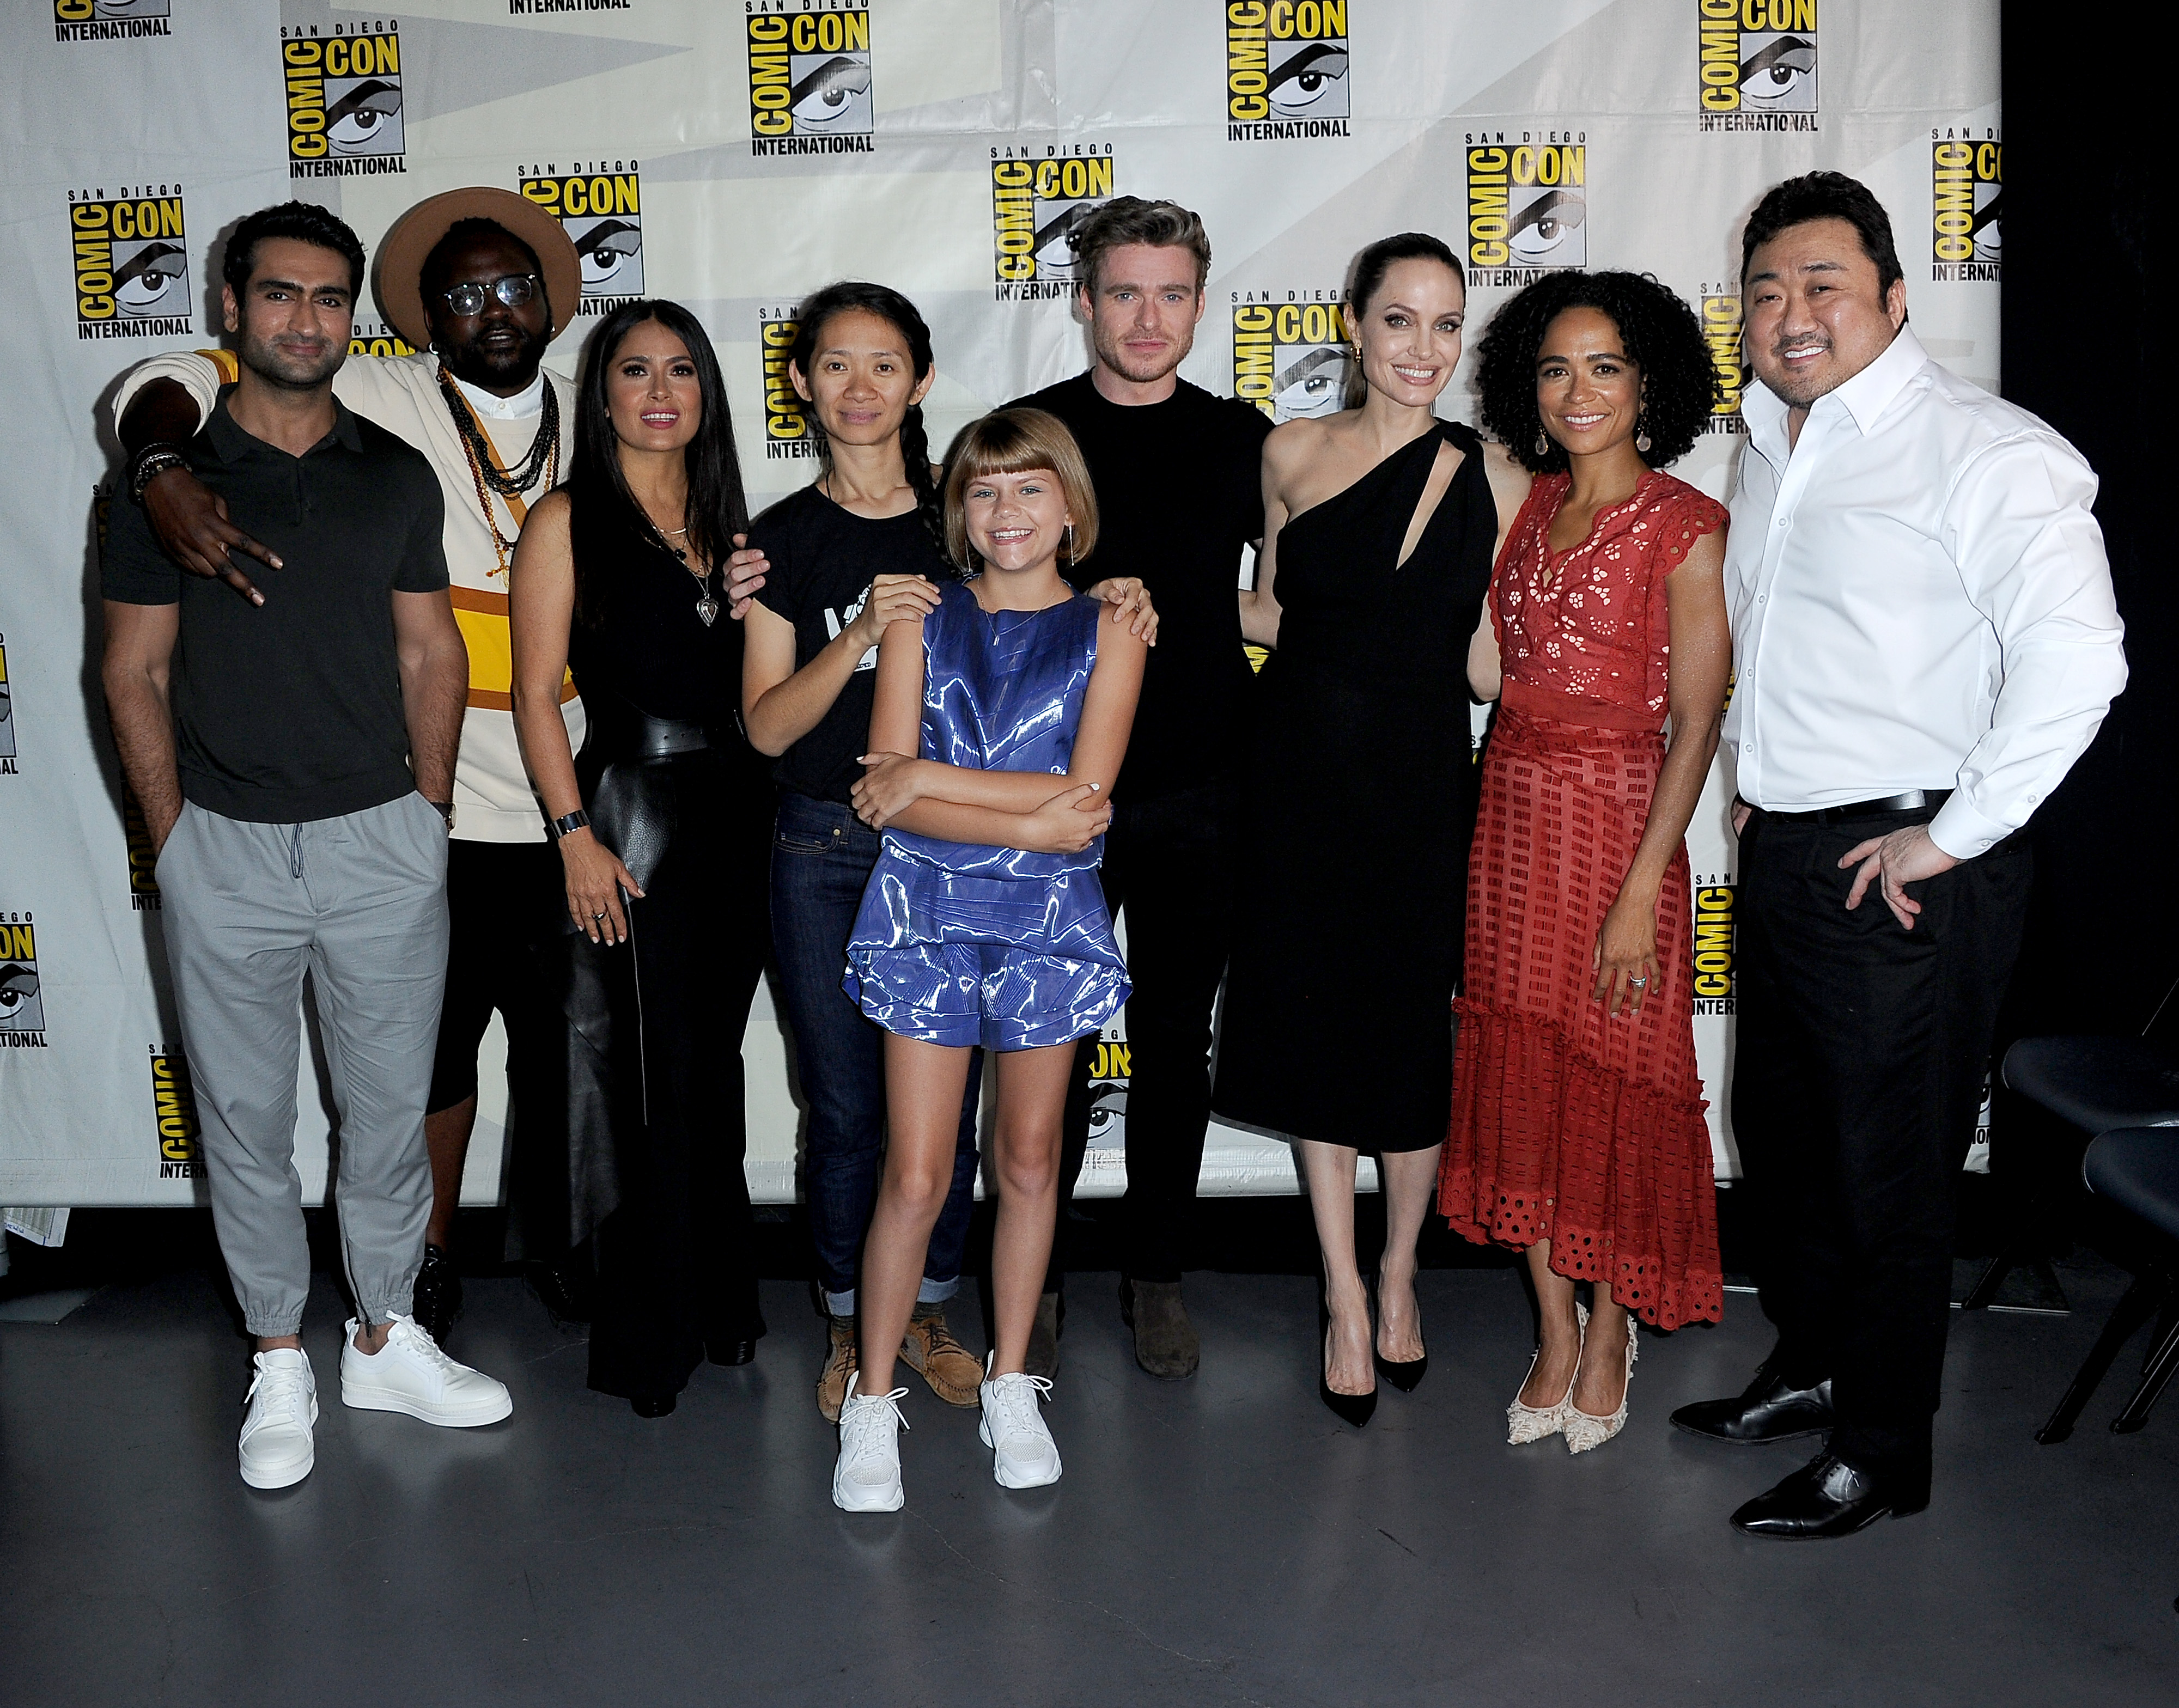 SAN DIEGO, CALIFORNIA - JULY 20: (L-R) Kumail Nanjiani, Brian Tyree Henry, Salma Hayek, Chloe Zhao, Lia McHugh, Richard Madden, Angelina Jolie, Lauren Ridloff and Dong-seok Ma attend the Marvel Studios Panel during 2019 Comic-Con International at San Diego Convention Center on July 20, 2019 in San Diego, California. (Photo by Albert L. Ortega/Getty Images)